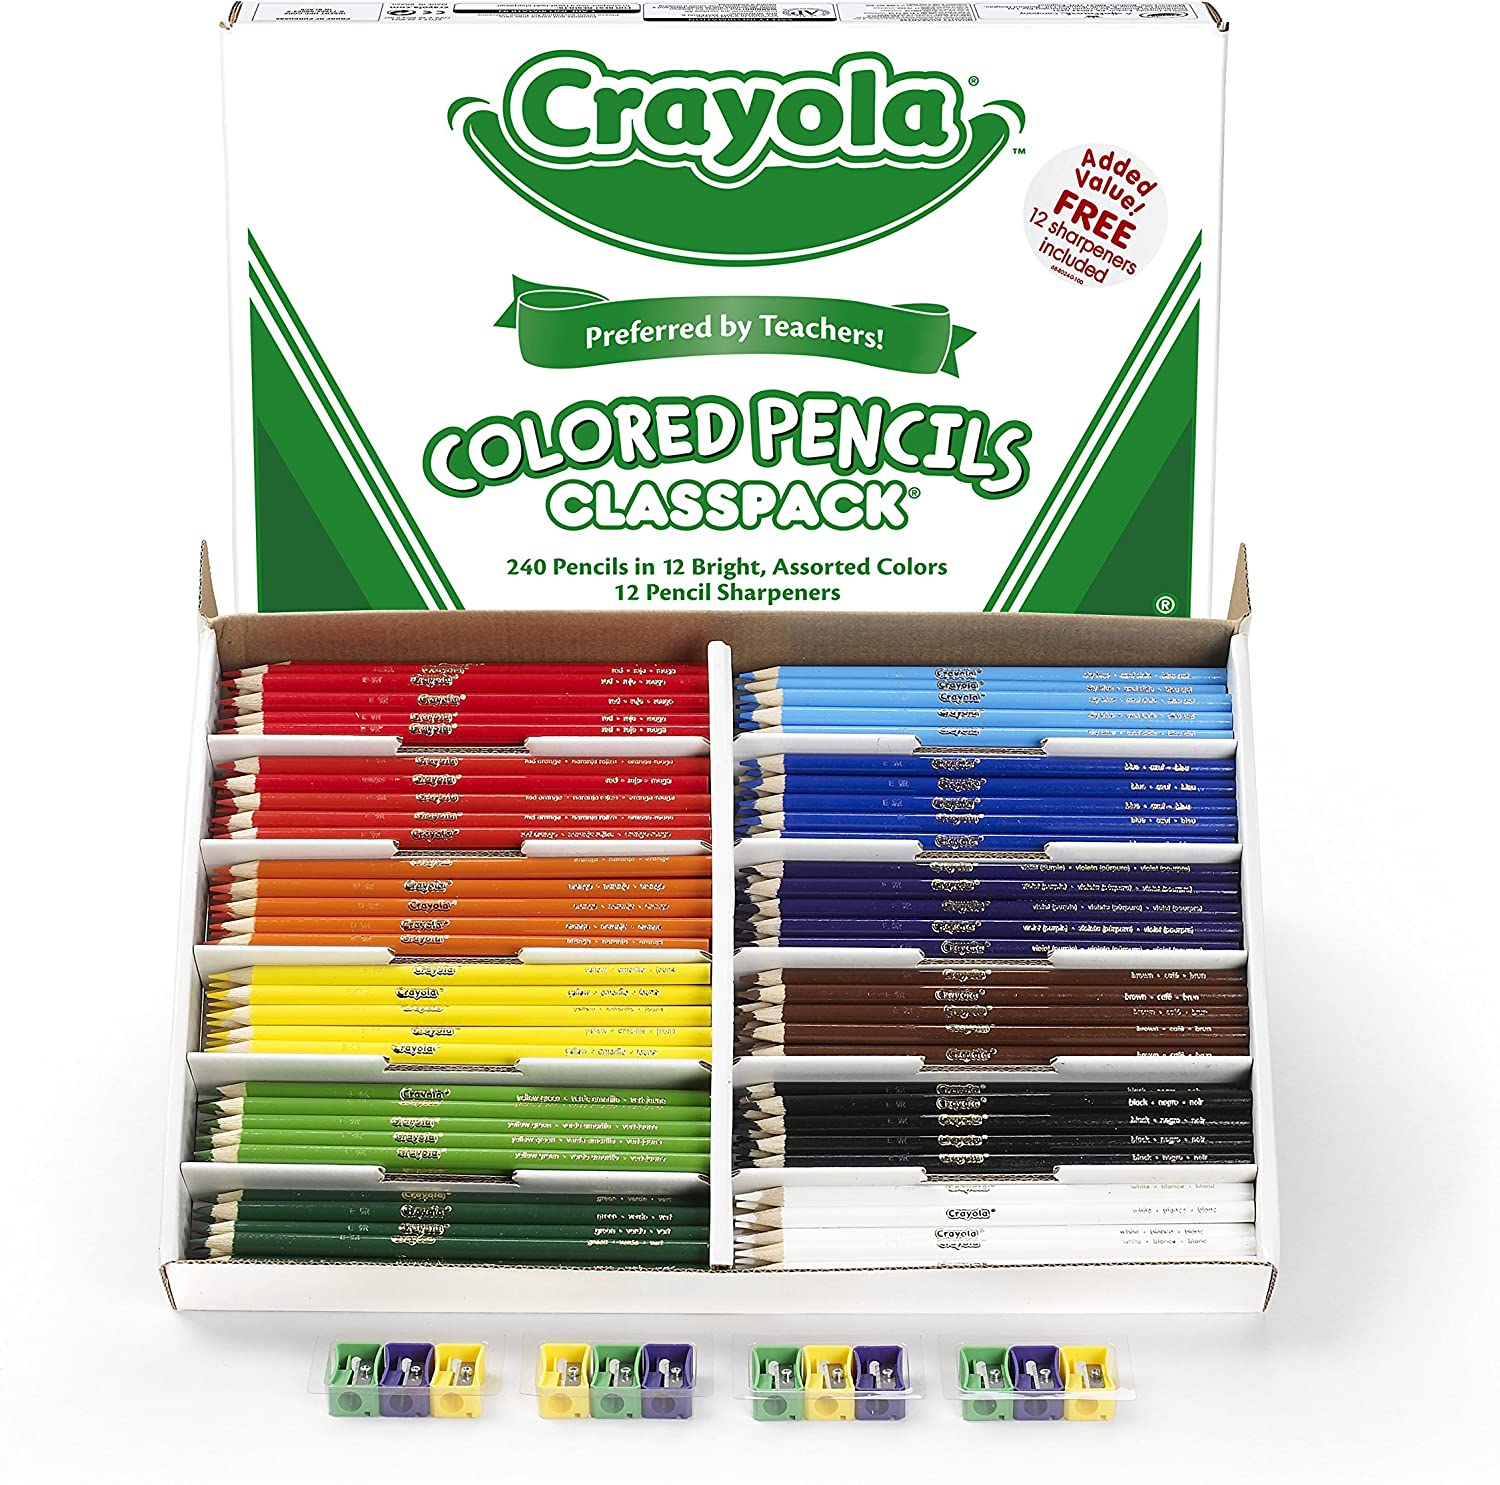 Crayola large box with colored pencils.